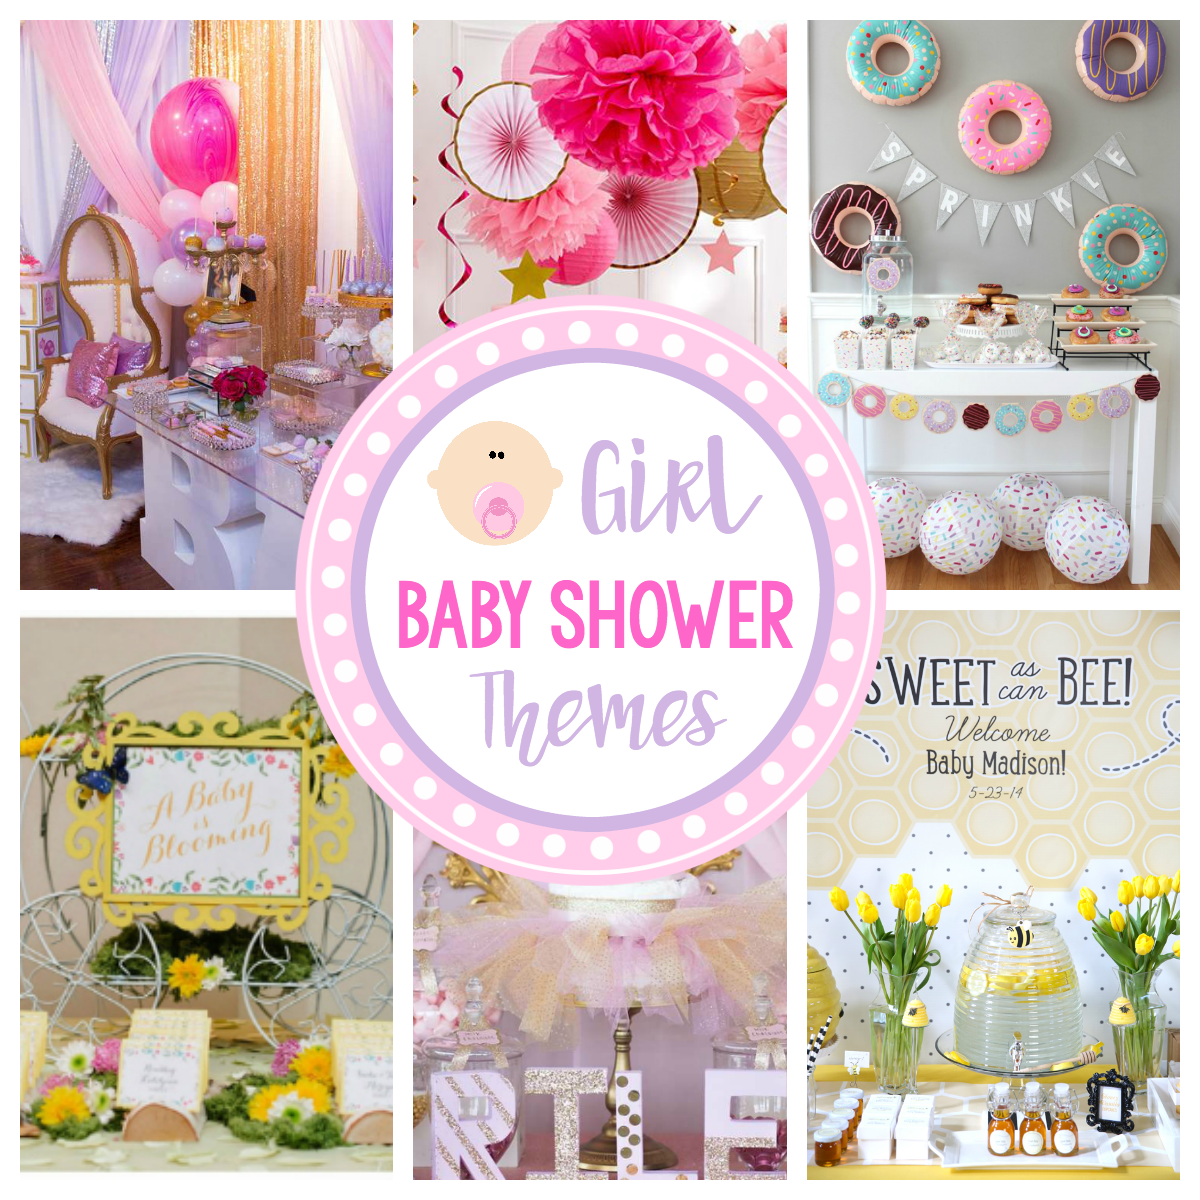 Cute Girl Baby Shower Themes & Ideas